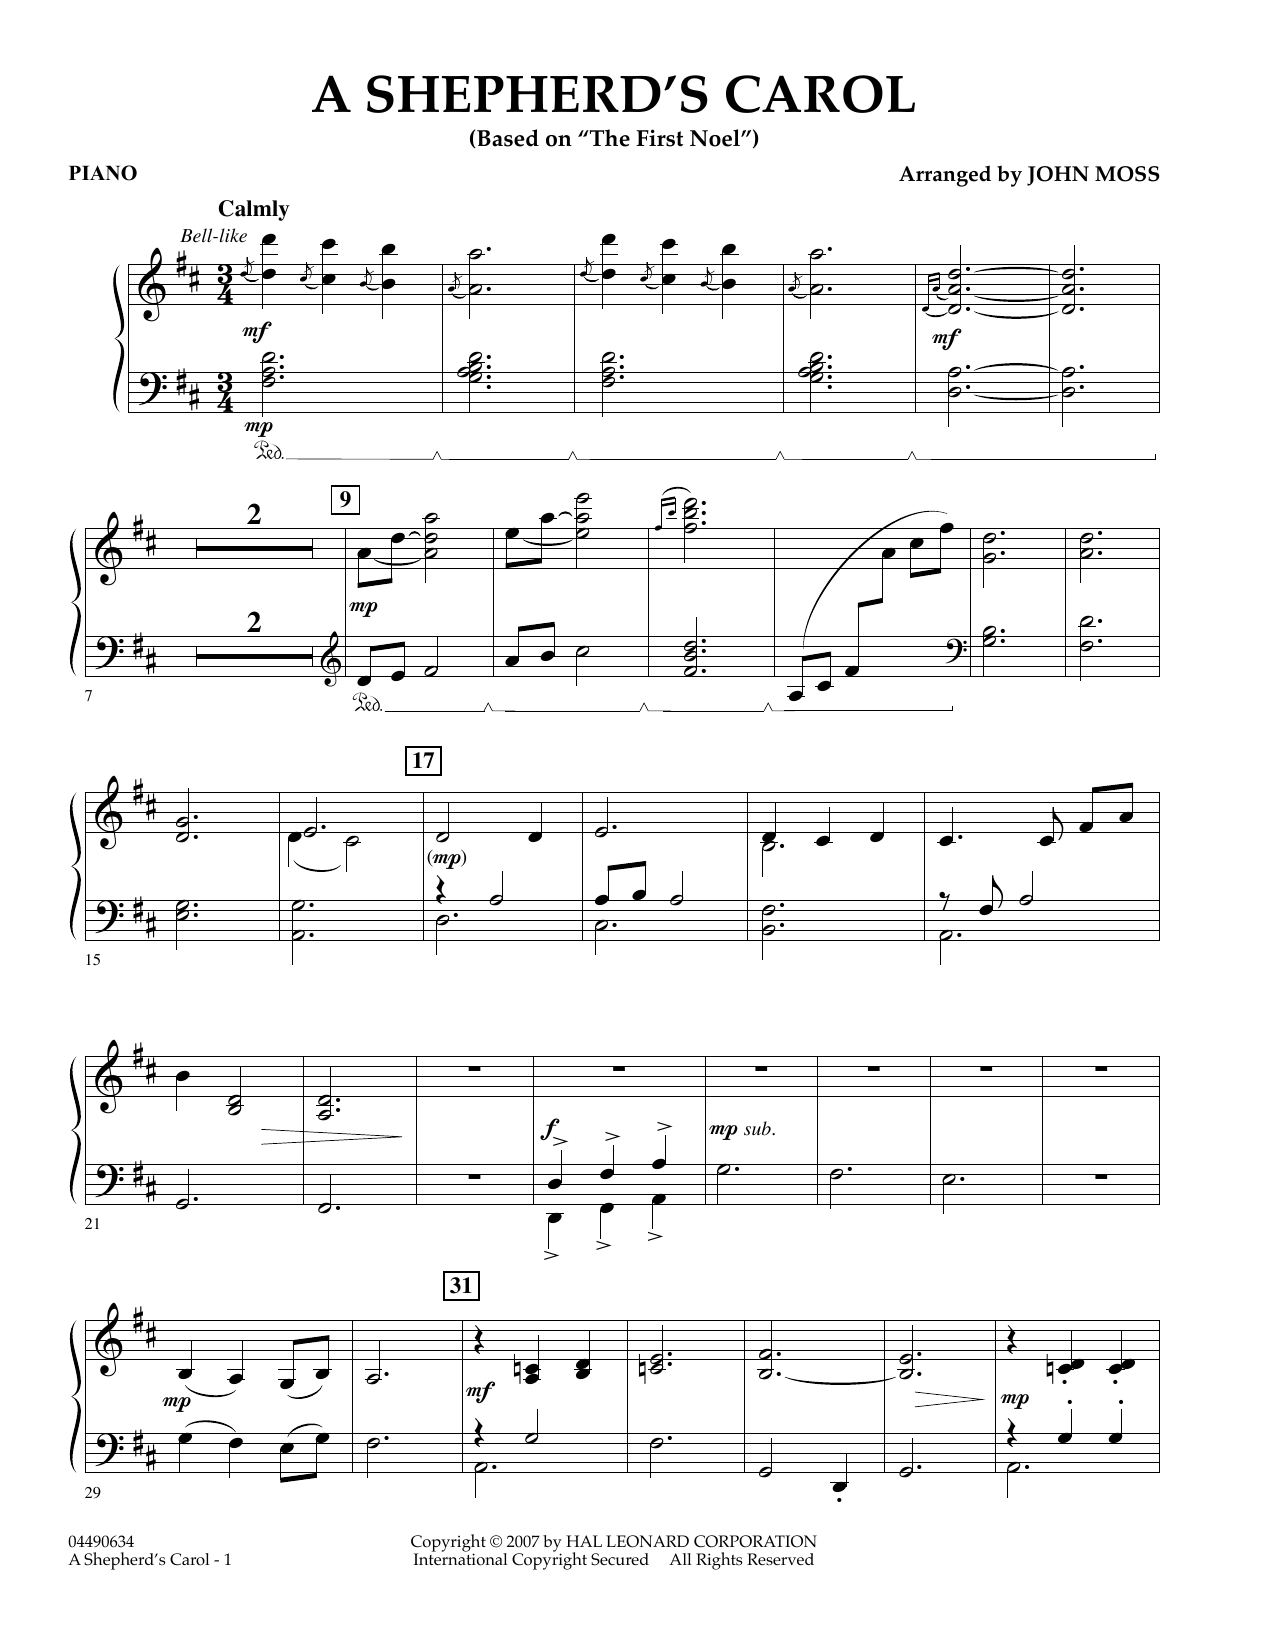 John Moss A Shepherd's Carol - Percussion 1 sheet music notes and chords. Download Printable PDF.